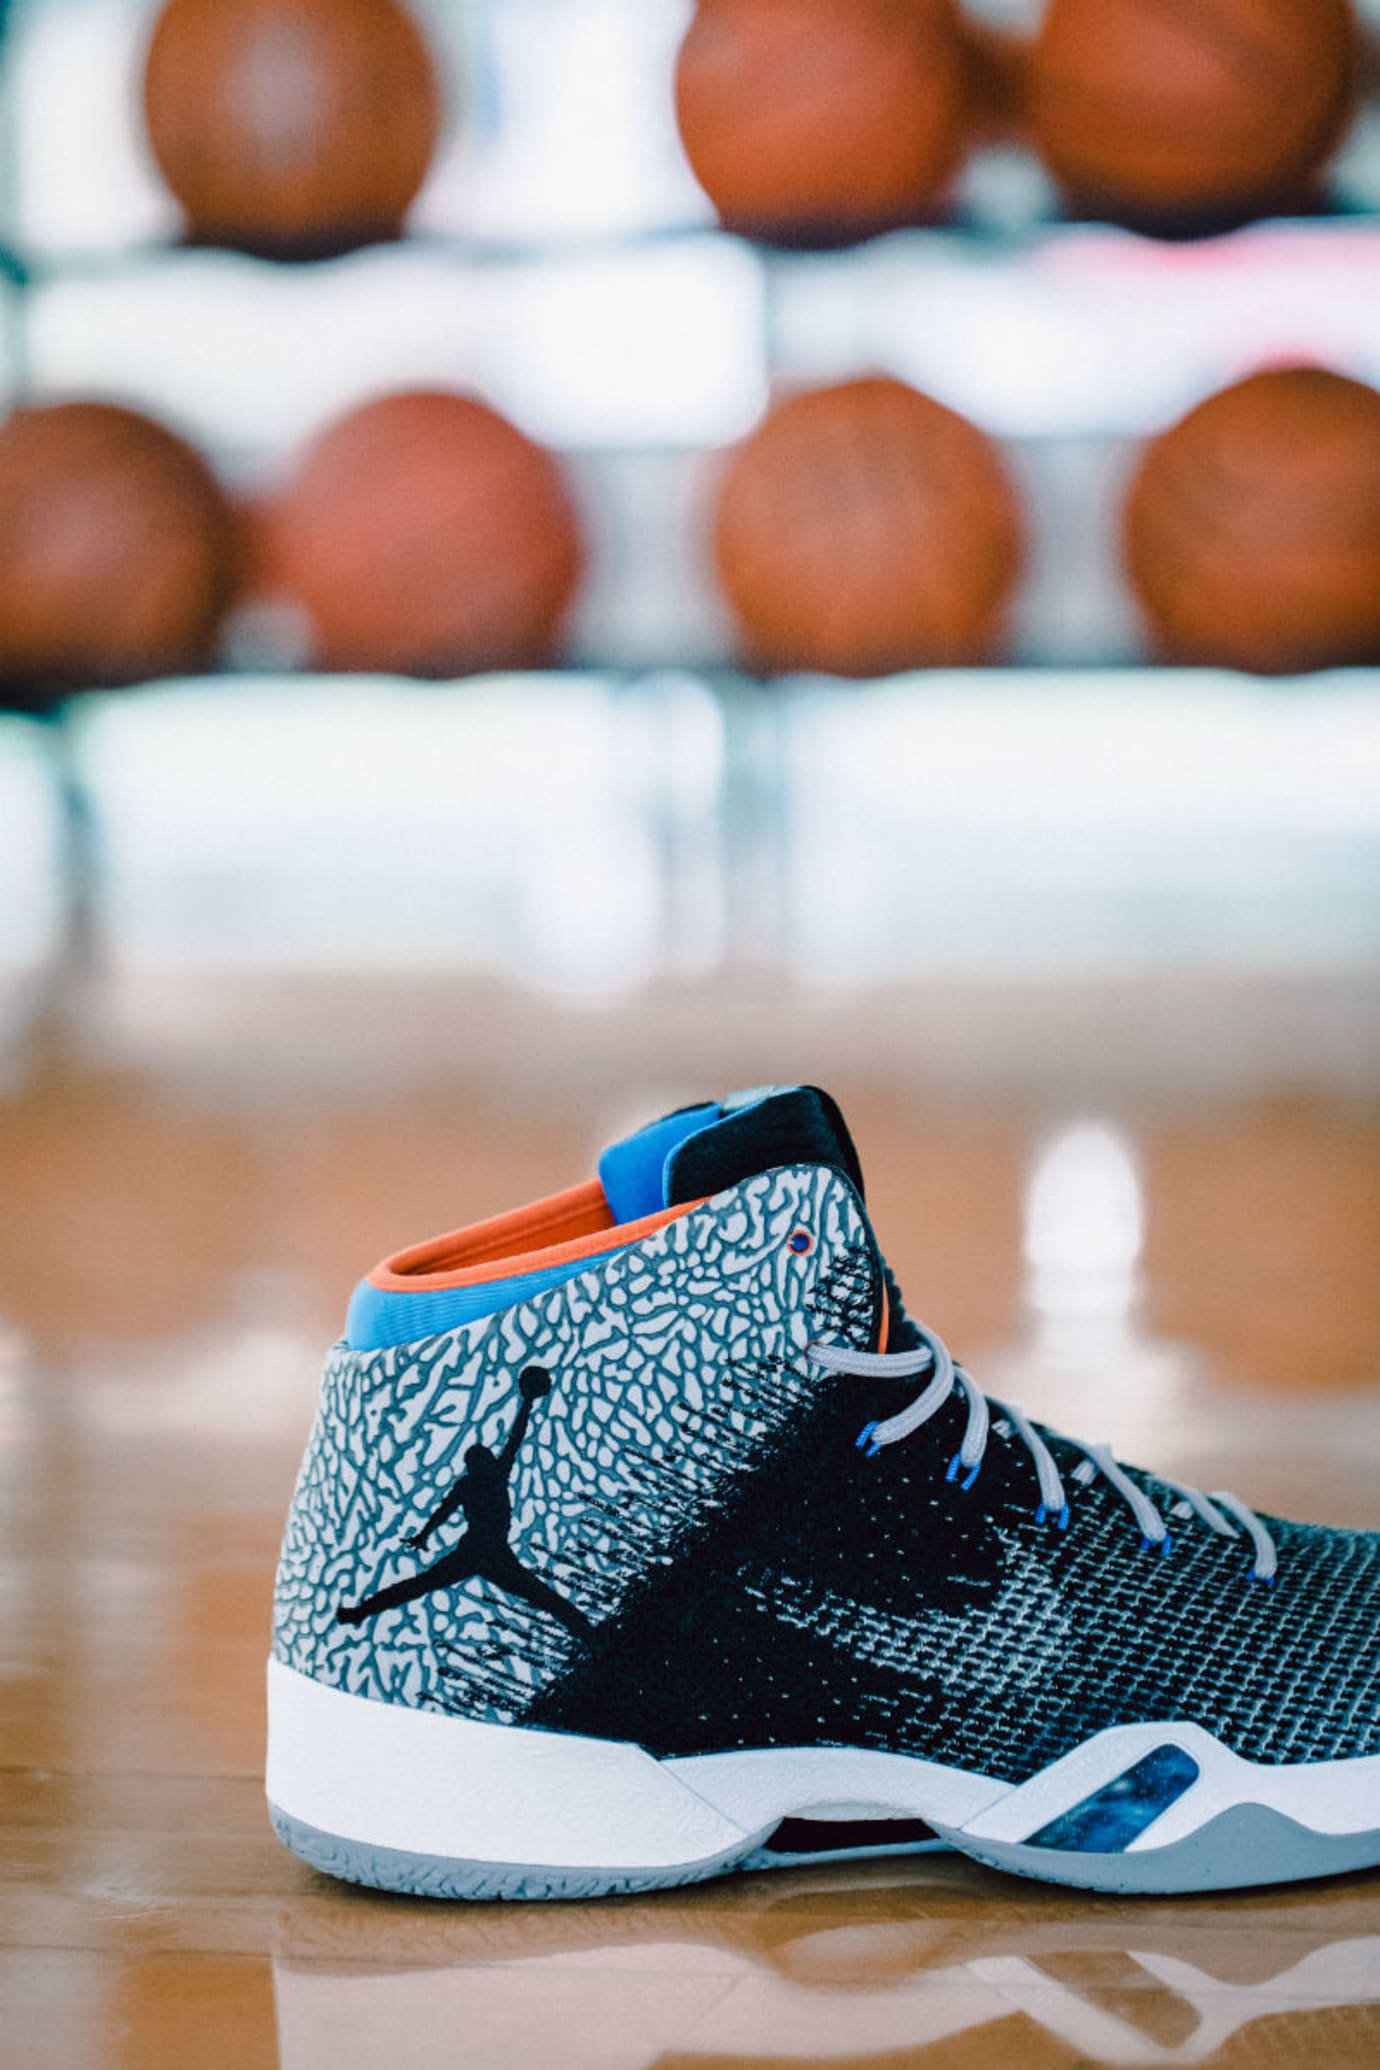 new style 7e6d7 524b9 Russell Westbrook Air Jordan 31 Why Not  PE Release Date (5)